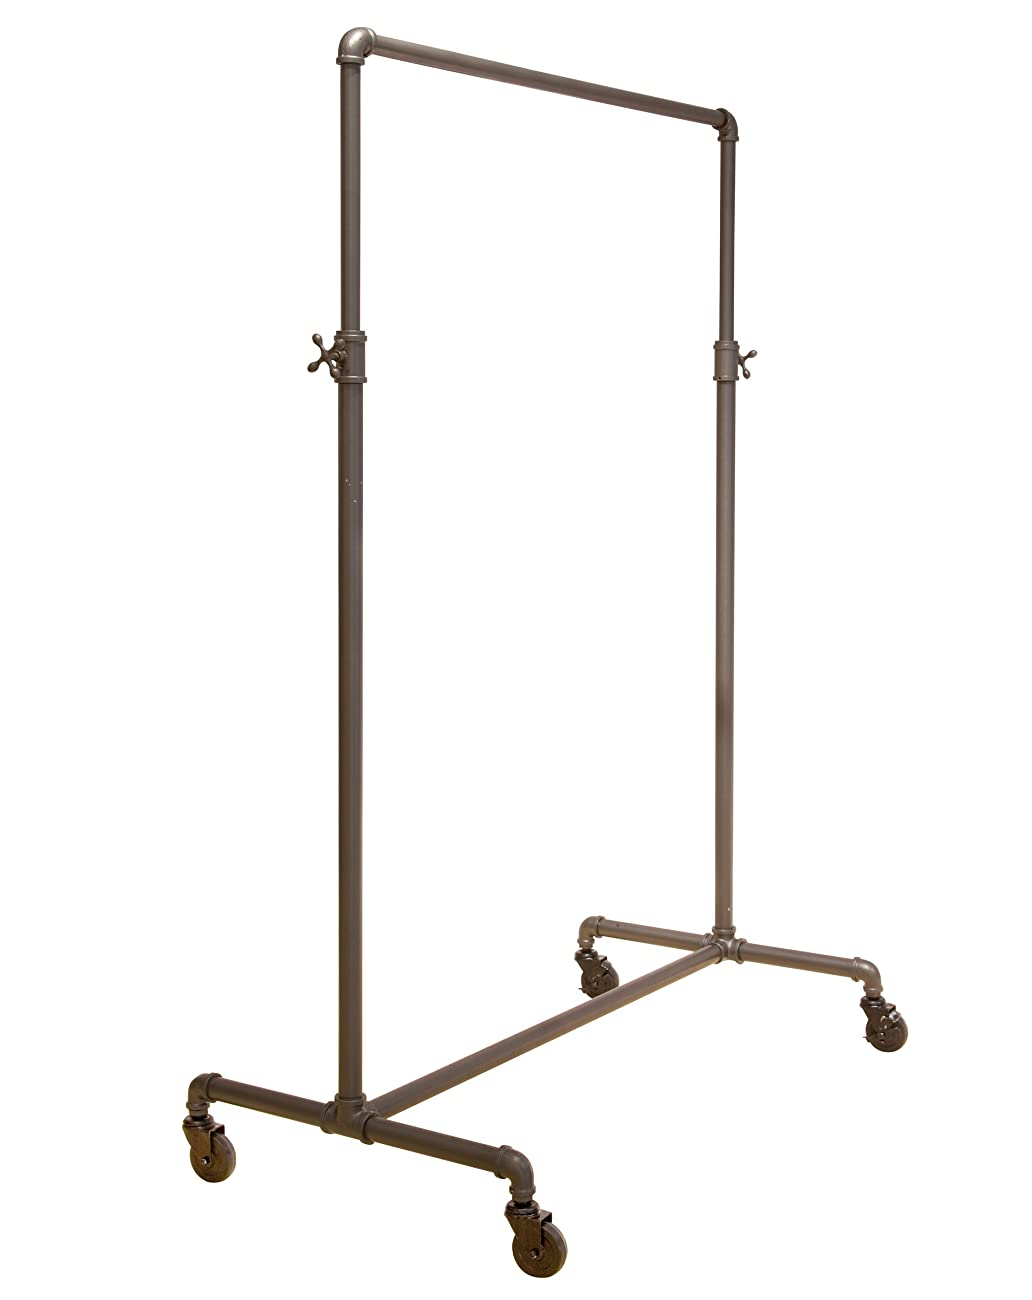 Econoco Pipeline Adjustable | 2-Way Ballet | Vintage Rolling Rack 0